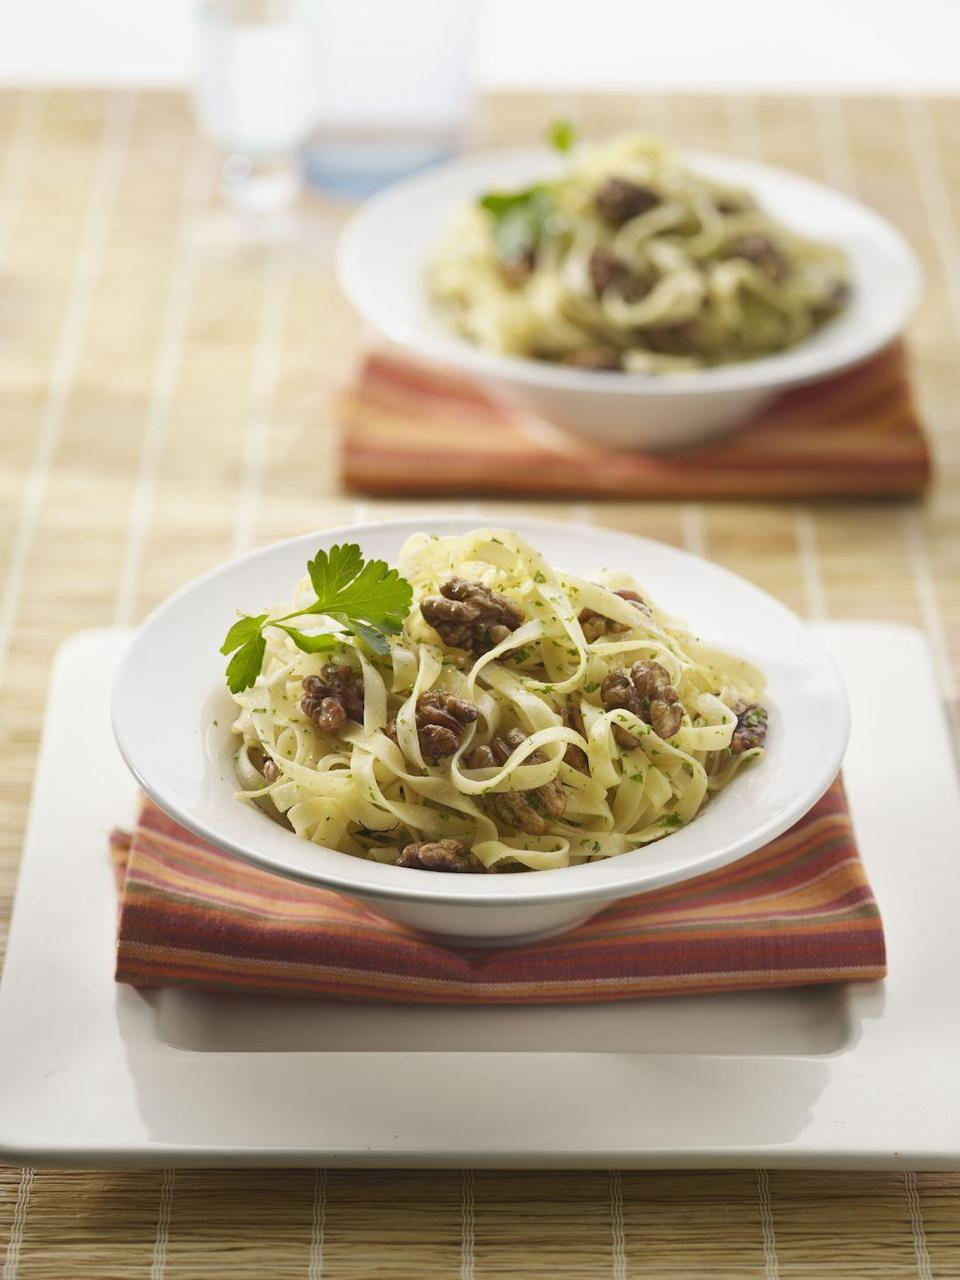 """<p>This decadent dish with toasted walnuts, blue cheese, and fresh chives can be made with rotini, rigatoni, penne, or bow-tie pasta for endless pasta-bilities.</p><p><strong><a href=""""https://www.countryliving.com/food-drinks/recipes/a33200/pasta-with-toasted-walnuts-blue-cheese-and-chives-recipe/"""" rel=""""nofollow noopener"""" target=""""_blank"""" data-ylk=""""slk:Get the recipe."""" class=""""link rapid-noclick-resp"""">Get the recipe.</a></strong></p>"""